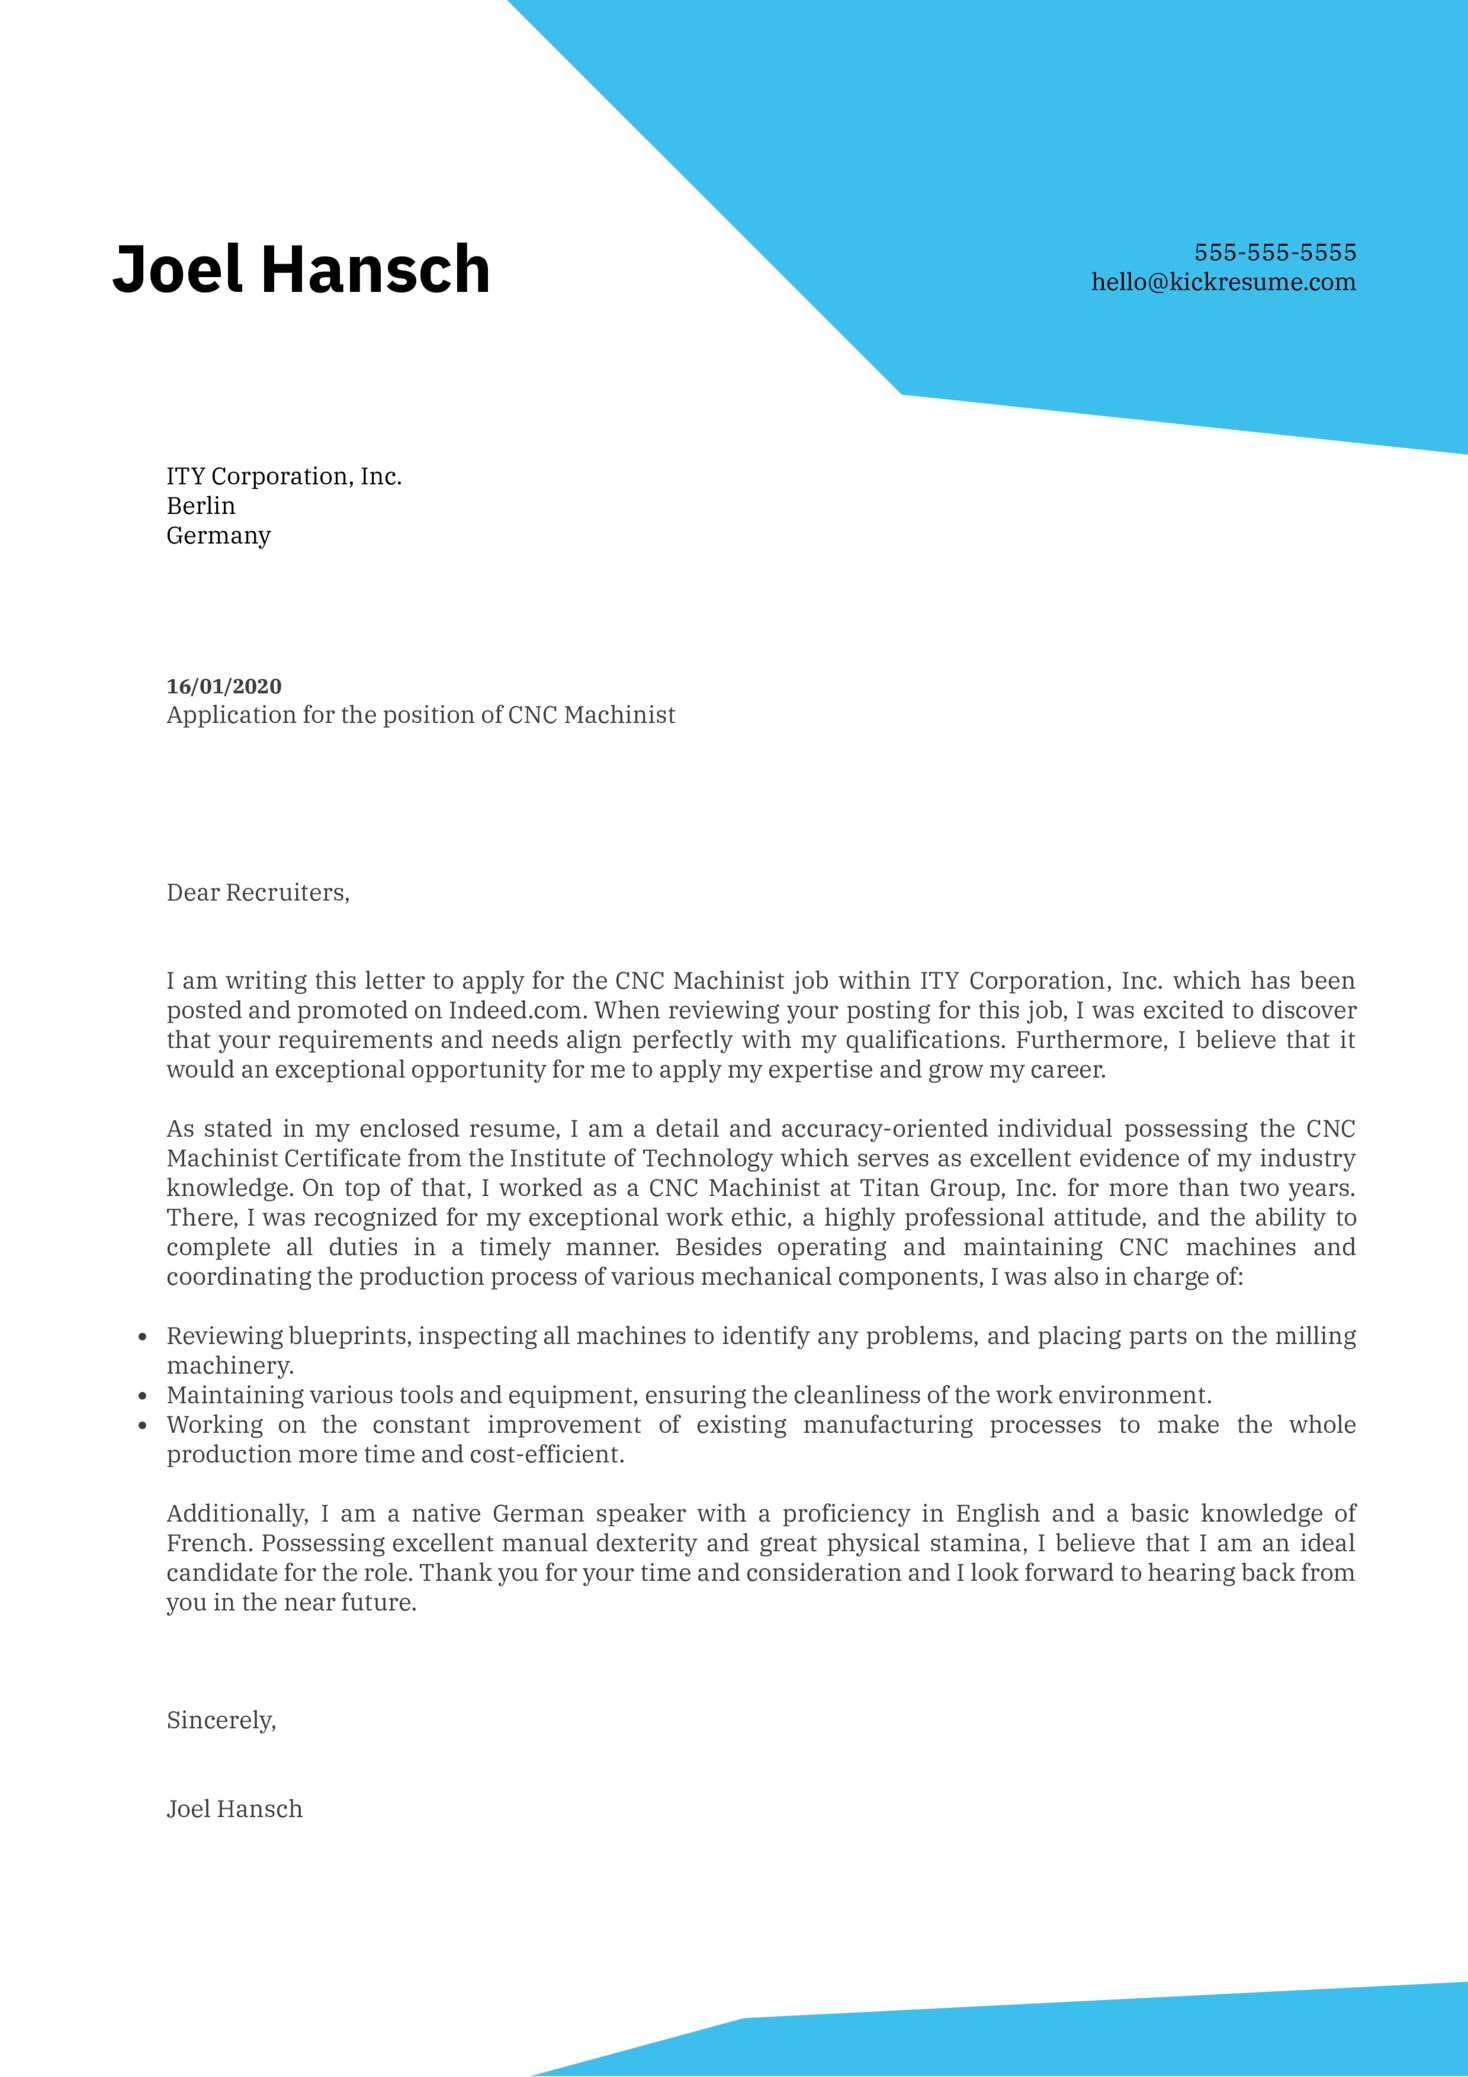 CNC Machinist Cover Letter Sample